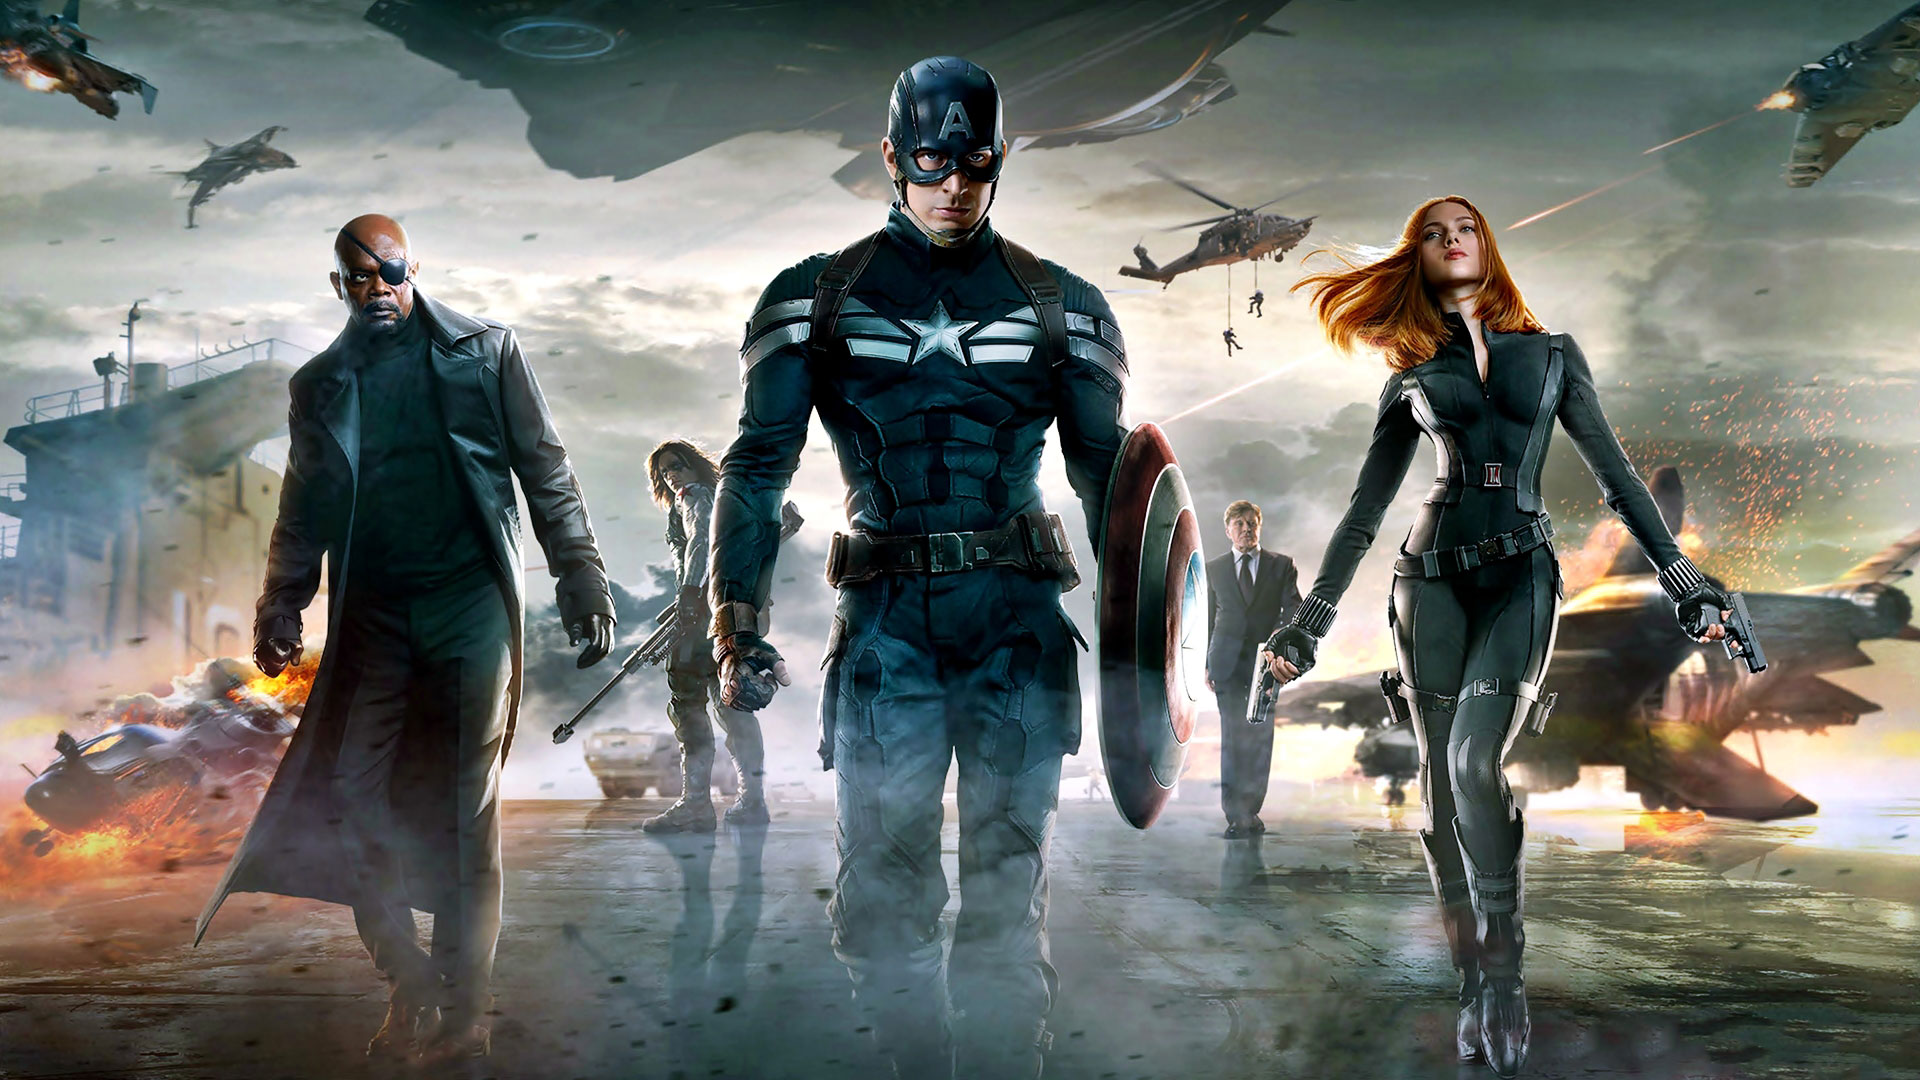 Captain-America-The-Winter-Soldier-2014-Poster-Wallpaper cgi